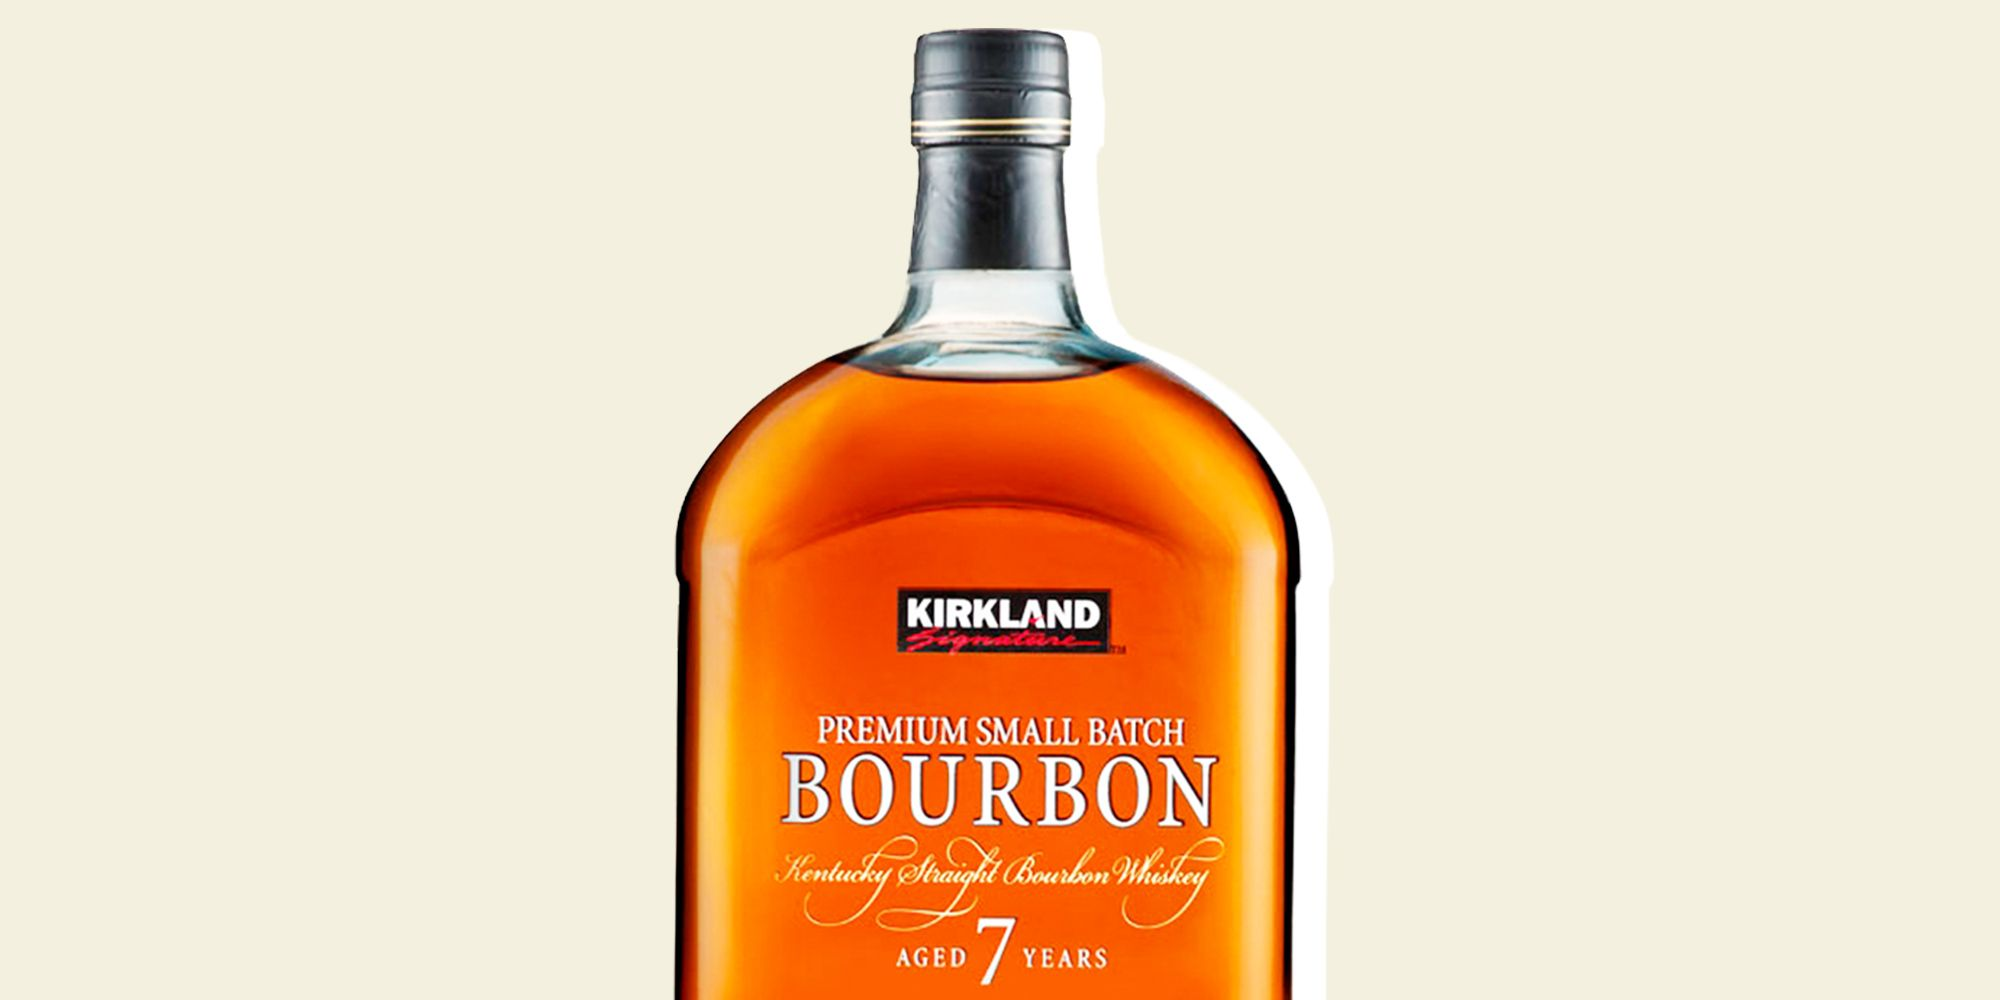 When a Bottle of Costco Bourbon Is More Than Just a Bottle of Costco Bourbon